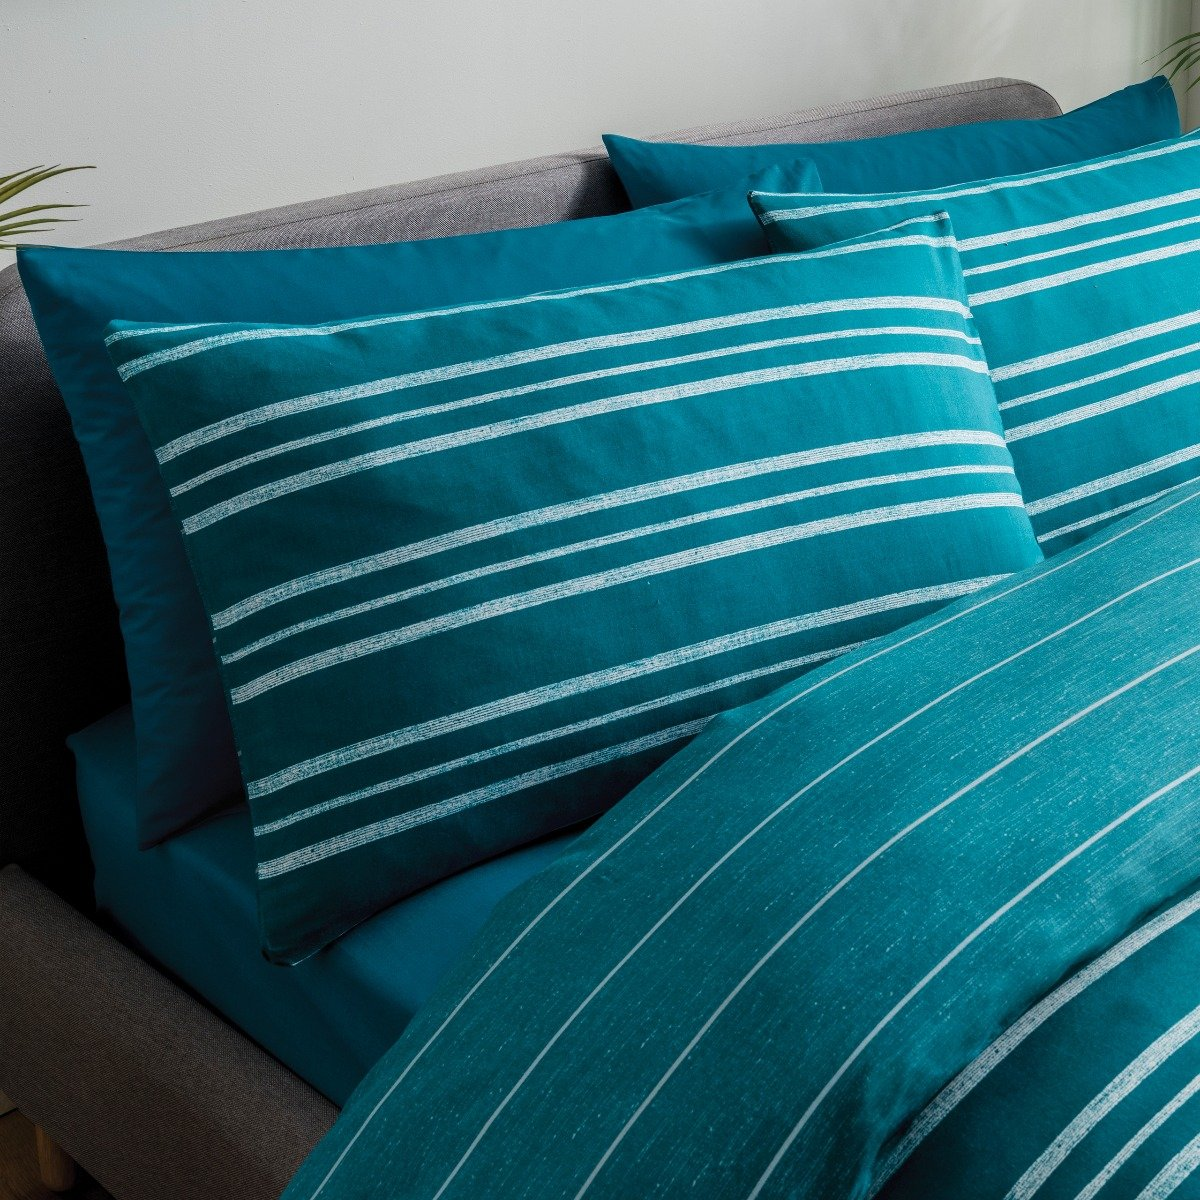 Textured Stripe Teal Bedding - Reversible Duvet Cover and Pillowcase Set